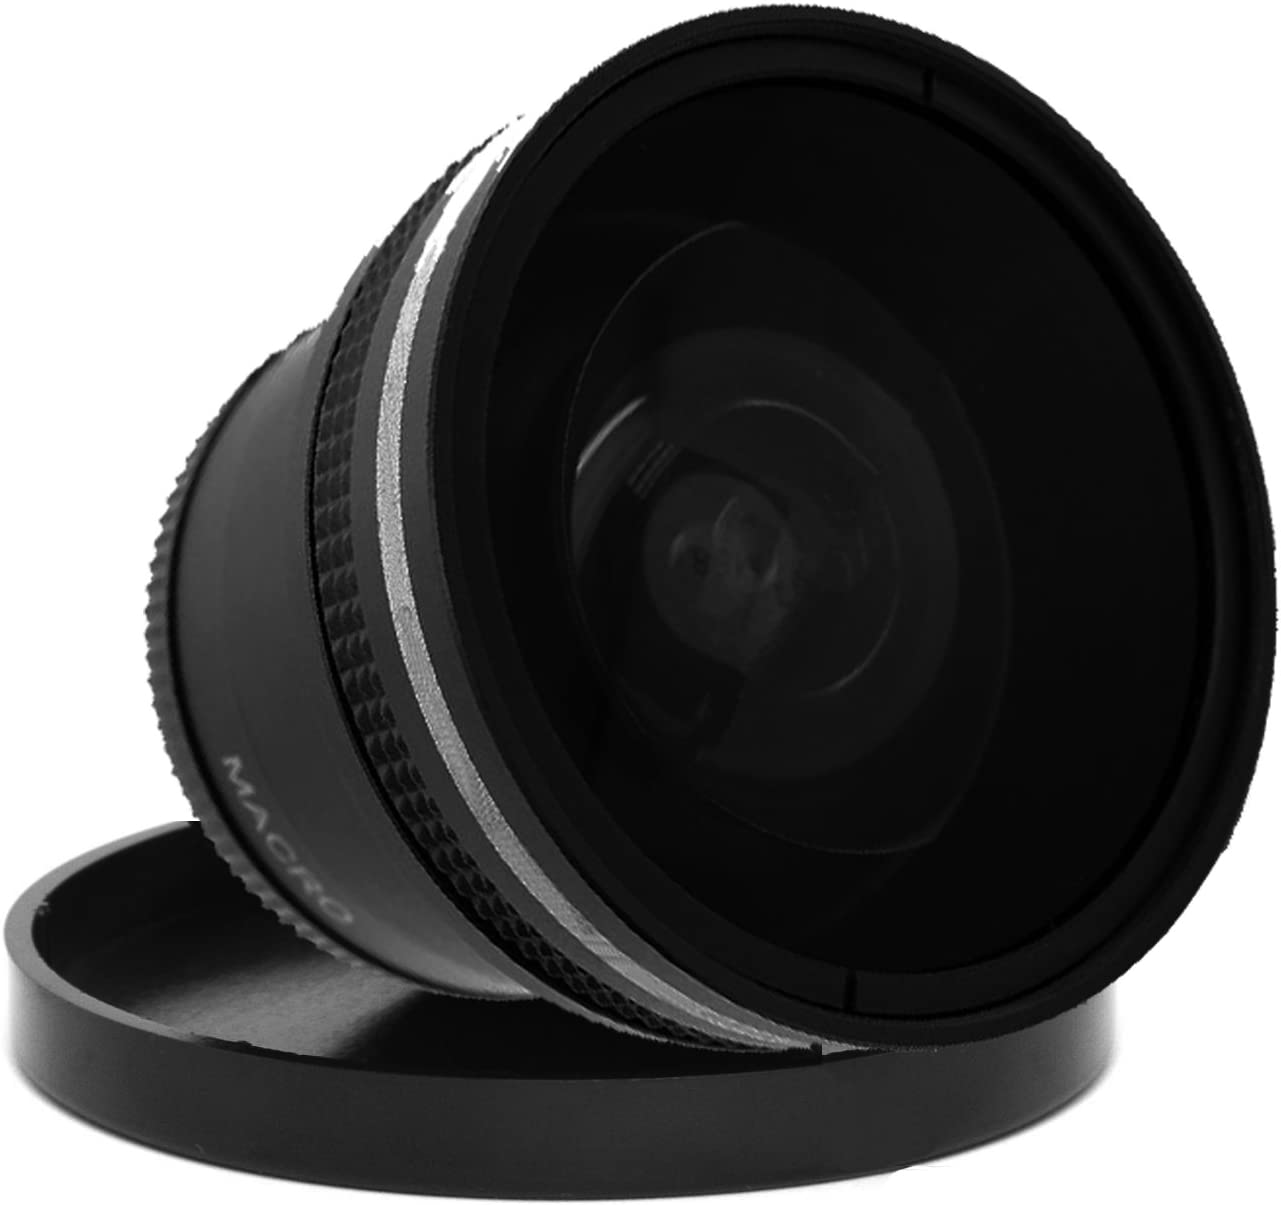 New 0.35x High Grade Fisheye Lens for Sony/ Cyber-Shot DSC-RX100 VI Adapter Included